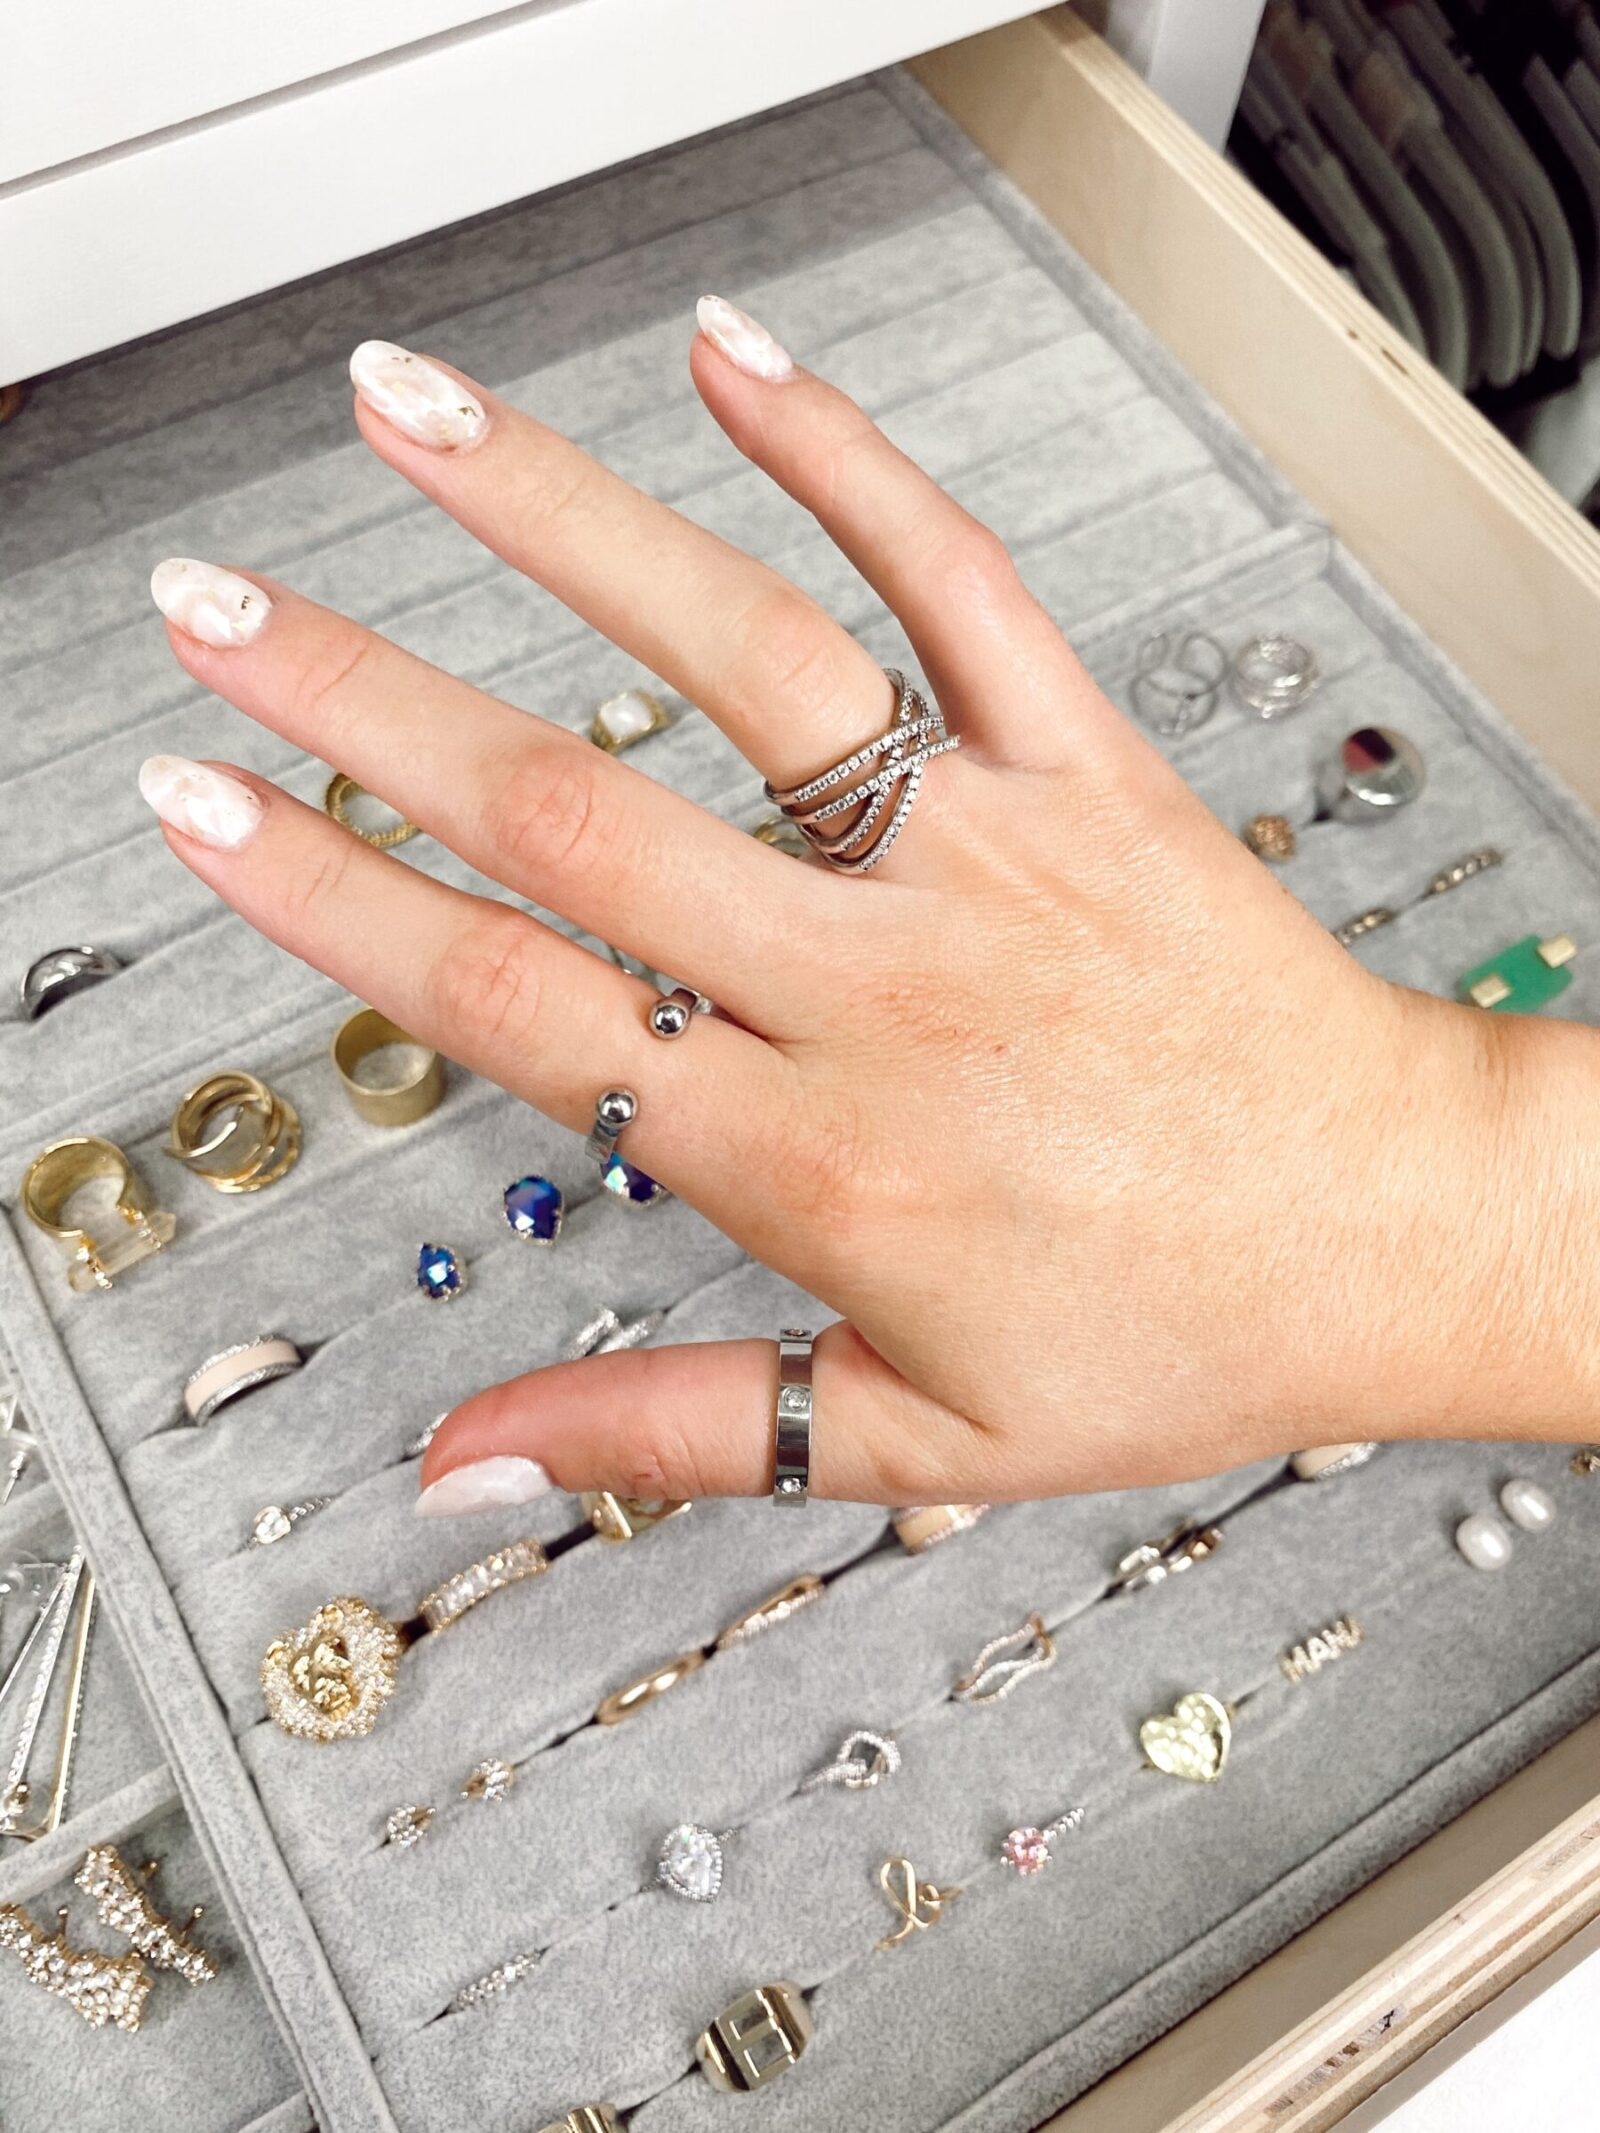 Simple everyday rings under $50 you'll love!